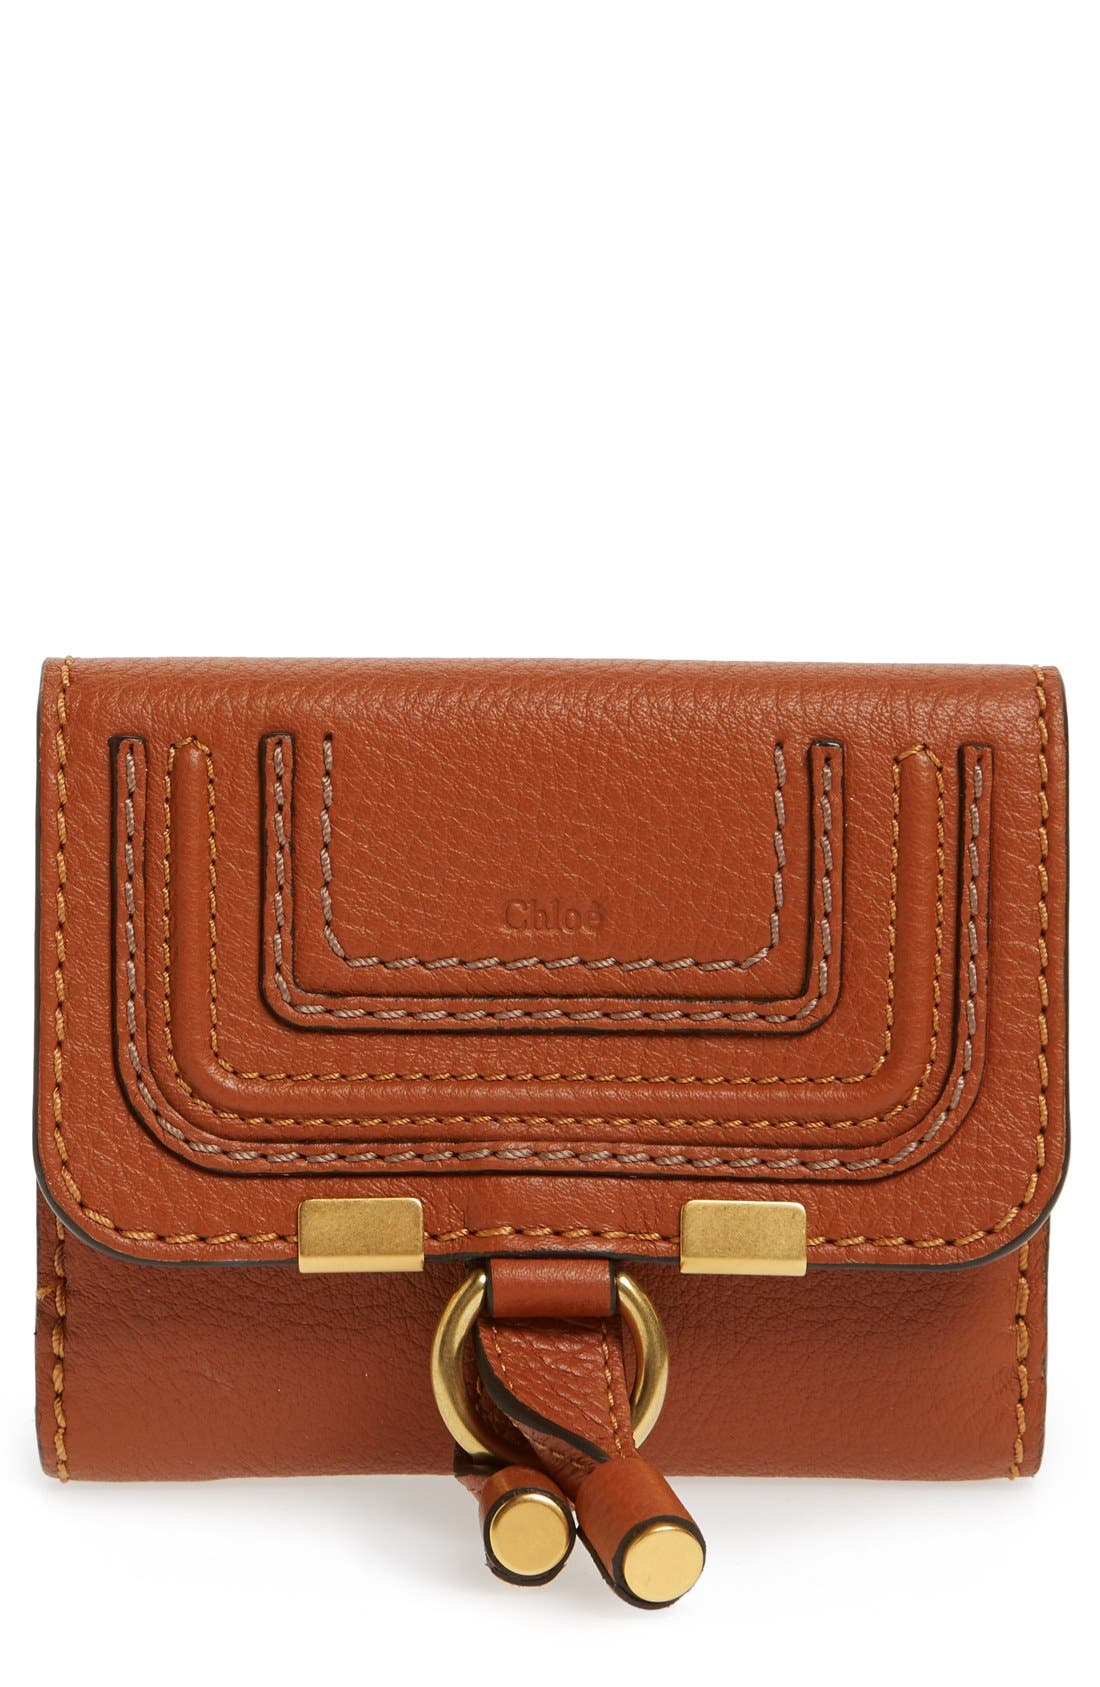 Chloé Marcie Leather French Wallet   Nordstrom